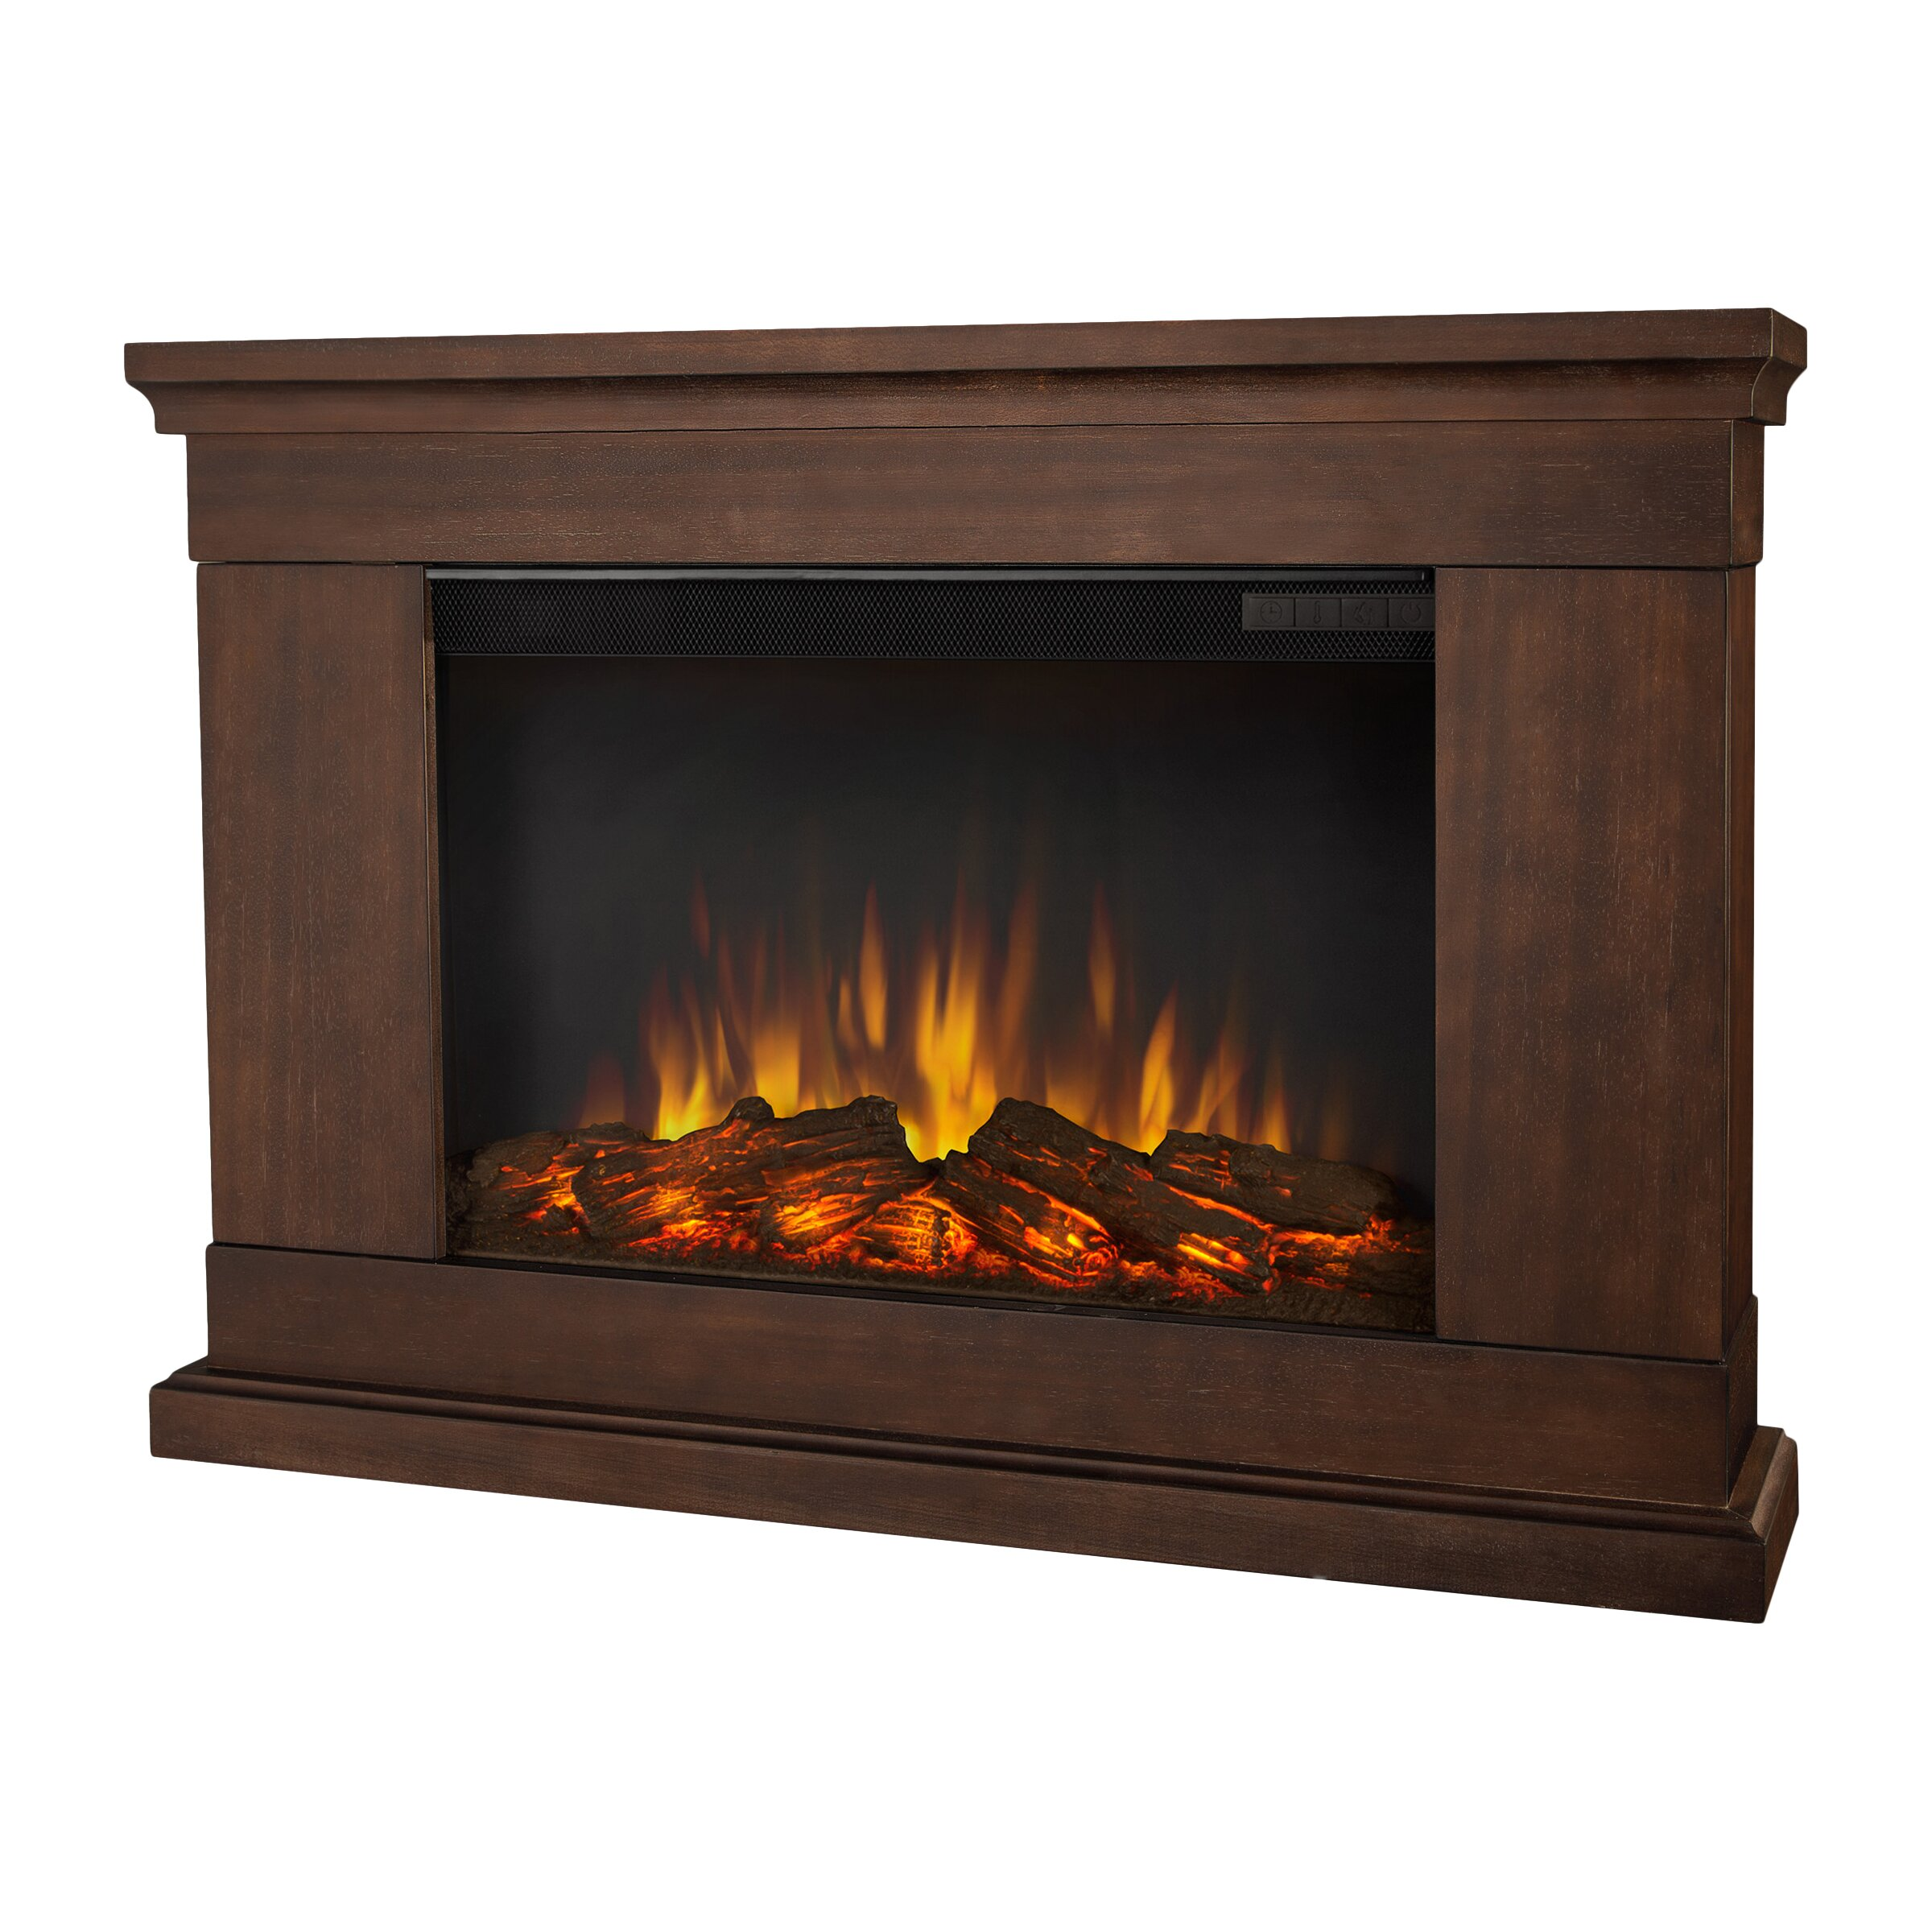 Small Gas Fireplaces For Bedrooms Wall Mounted Fireplaces Youll Love Wayfair